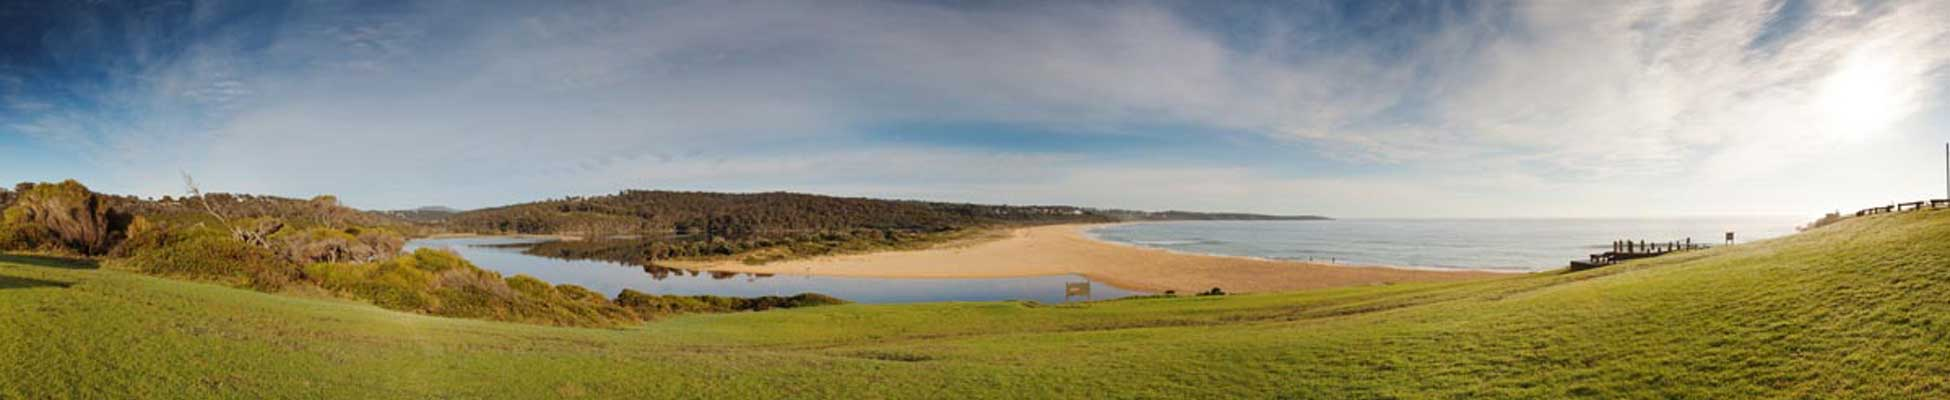 Short Point merimbula